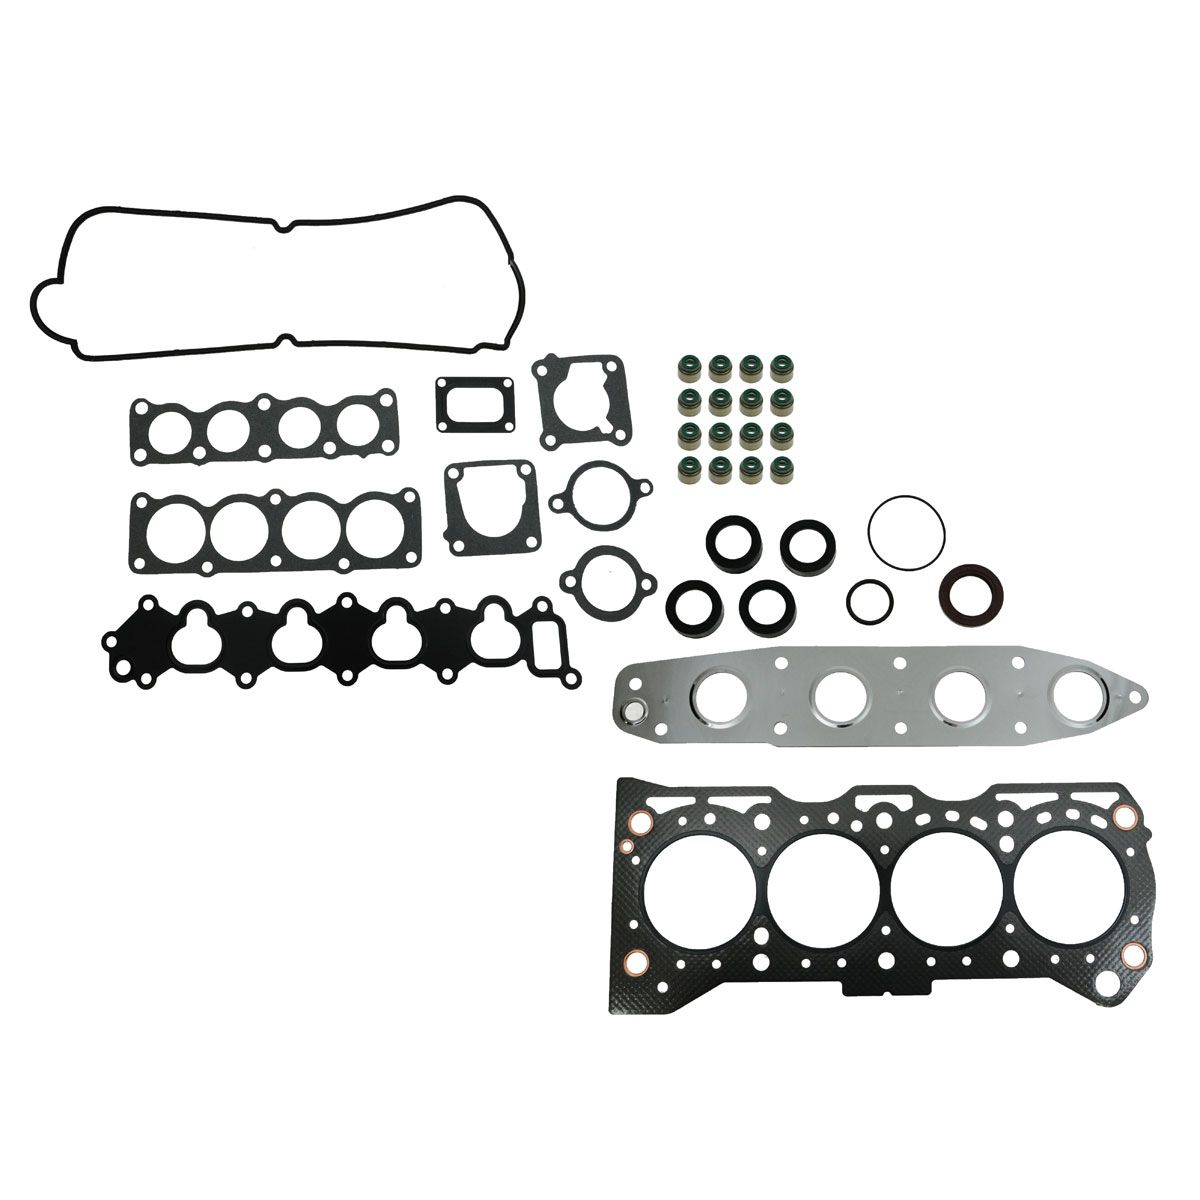 engine head intake exhaust manifold gasket set for suzuki tracker Geo Trapper engine head intake exhaust manifold gasket set for suzuki tracker sidekick 1 6l